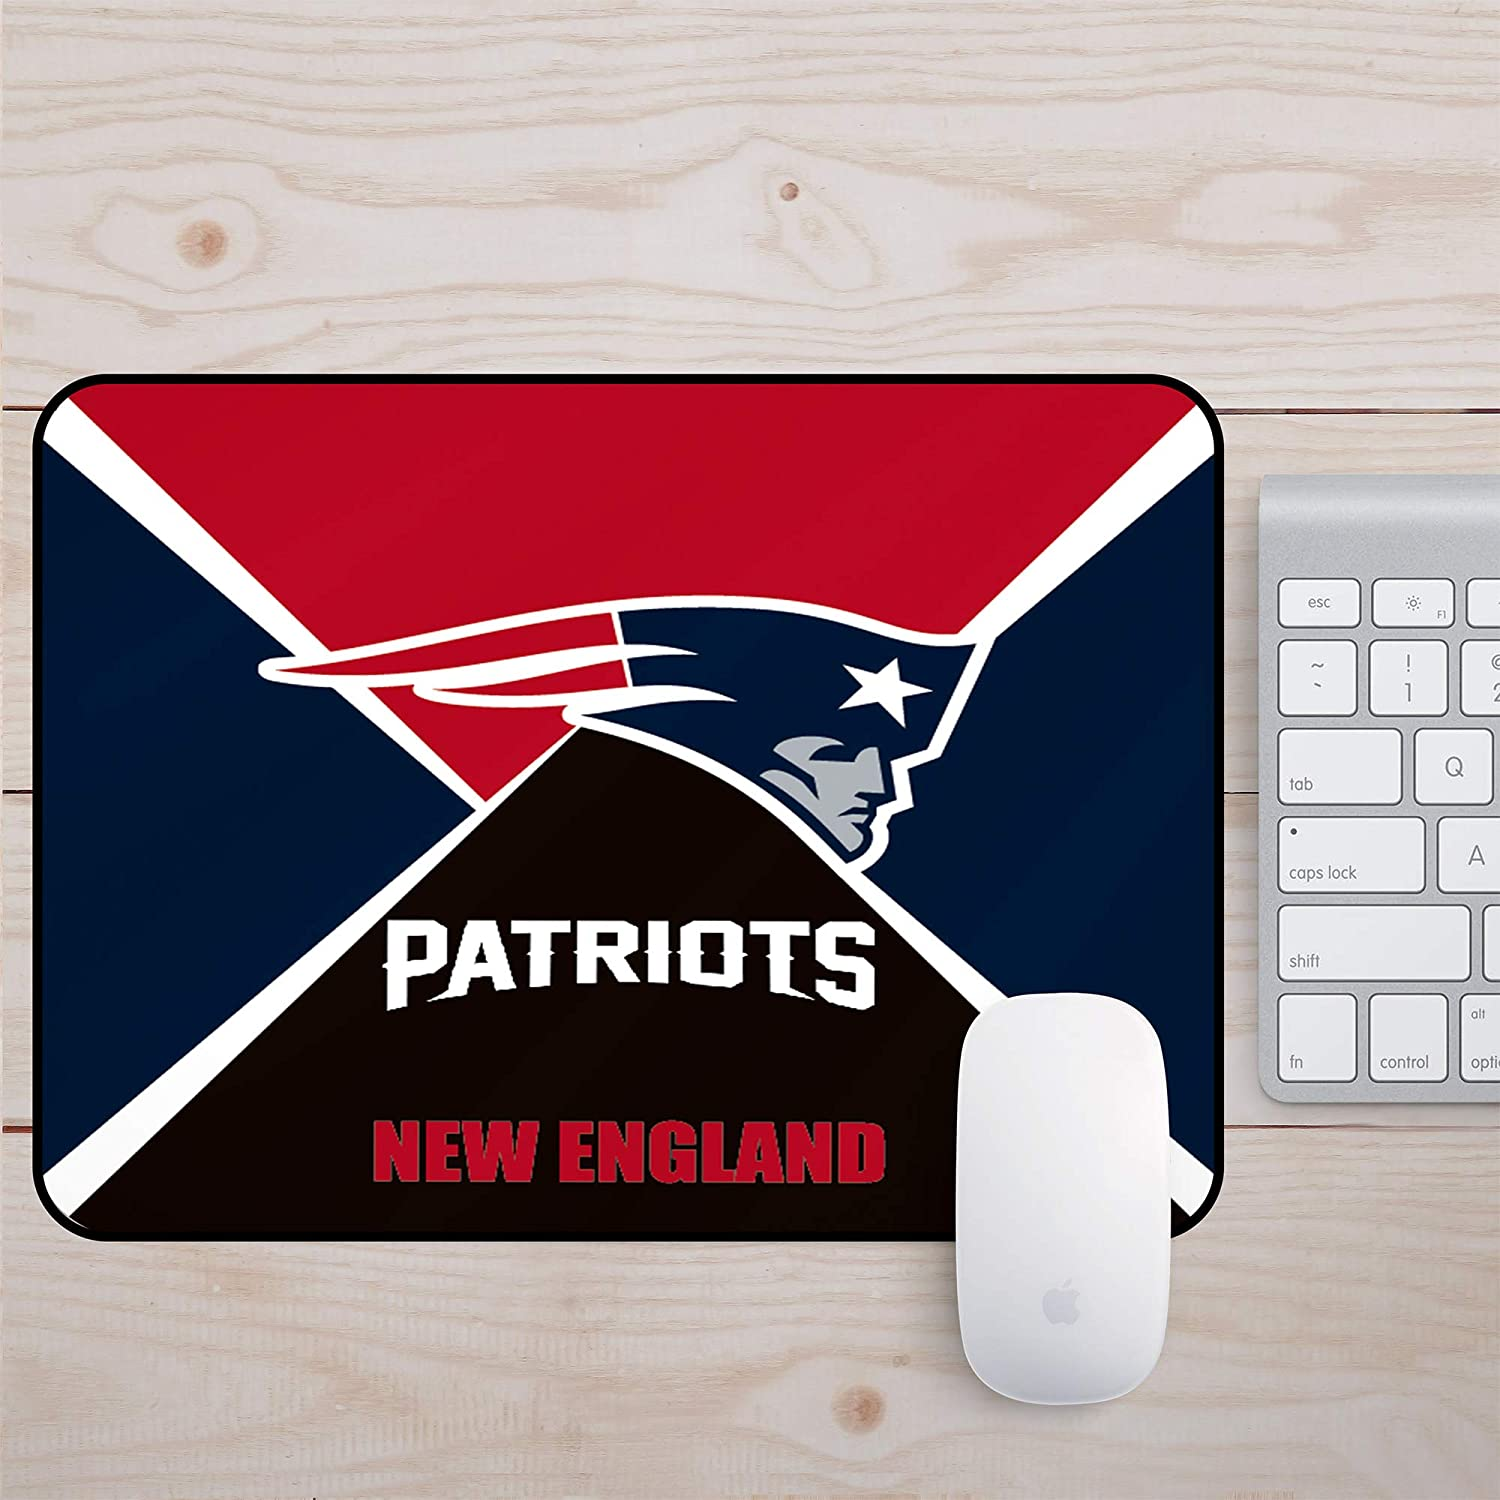 Square Mouse Mat//Gaming Mouse Pad 8x10x0.8Inch Precision and Speed Rubber Base for Stable Grip Football Team Logo Creative Custom Mouse Pad New Orleans Saints